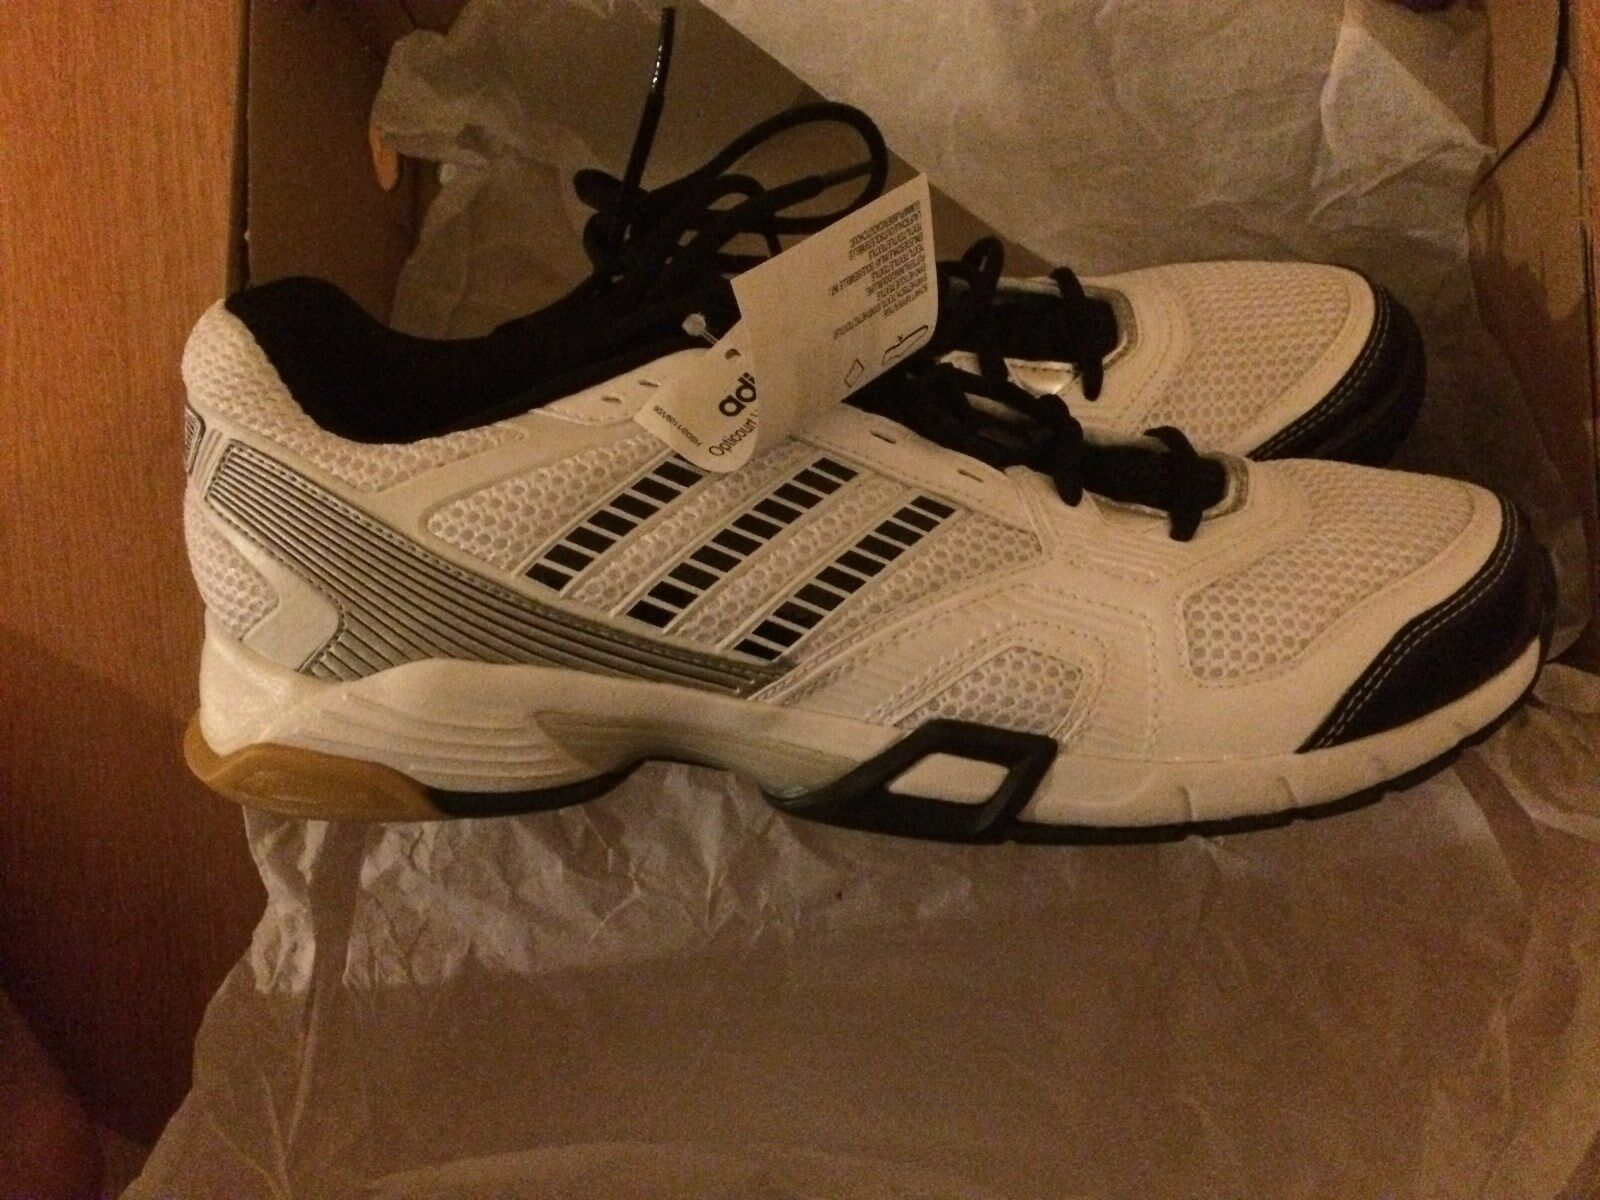 Adidas Opticourt VB 8.5 W Shoes Price reduction Price reduction